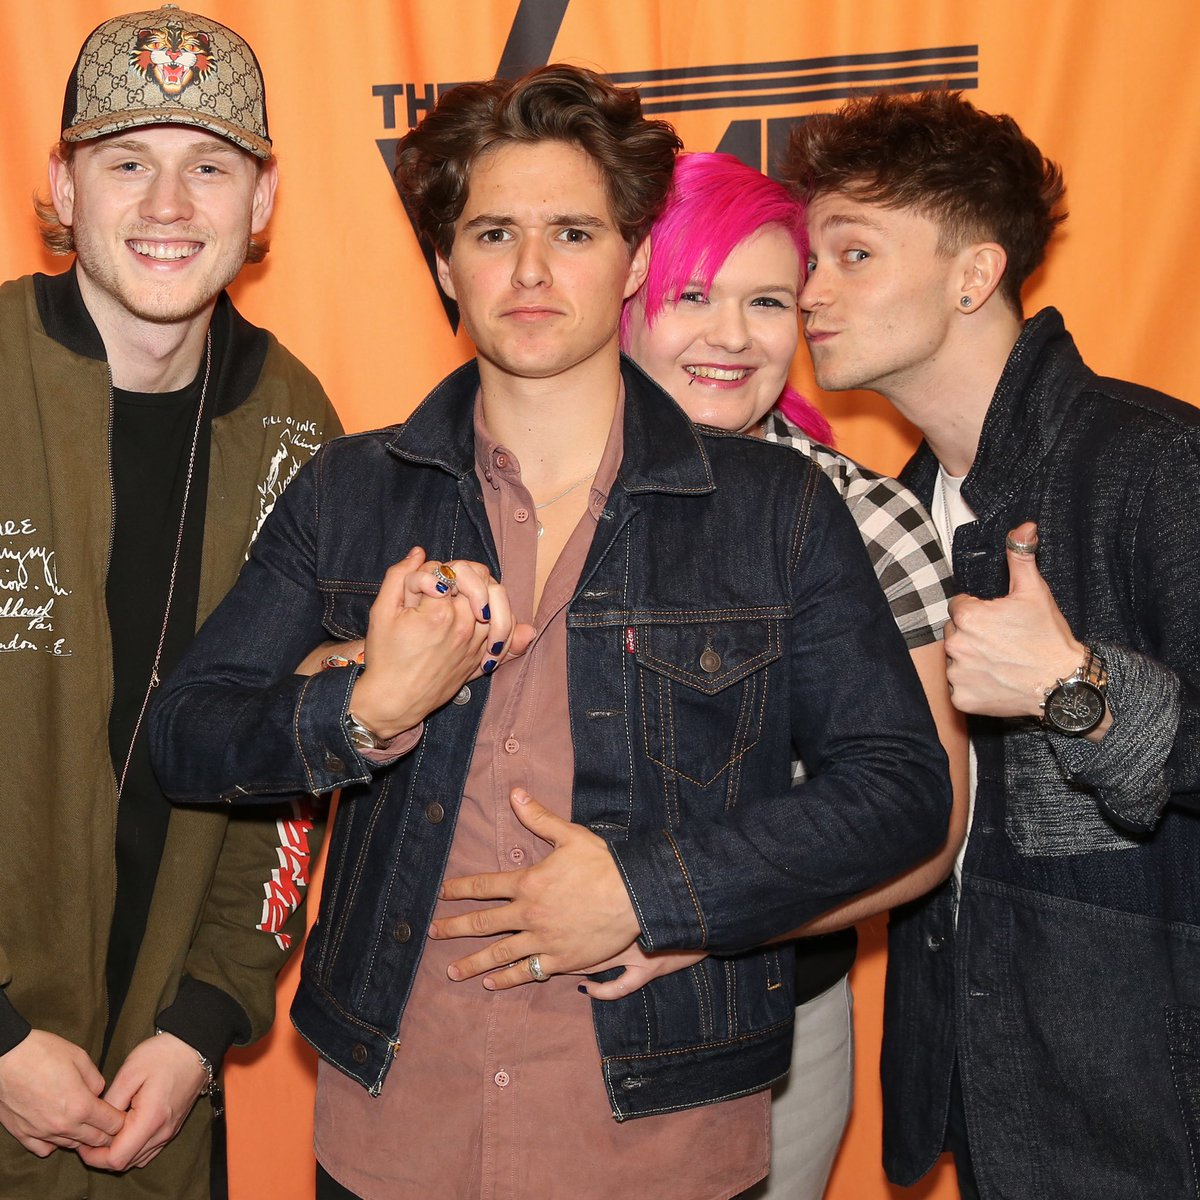 A moment in time when the #threesome was the #besttime of my life!  @TheVampsBrad @TheVampsTristan @TheVampsCon @TheVampsJames @TheVampsband  http://www.instagram.com/harvampstarette  #thevamps #thevampsband #tristanevans #jamesmcvey #connorball #bradleywillsimpson #thankyou #abs #touchyfeelypic.twitter.com/EvEFhdxm3b